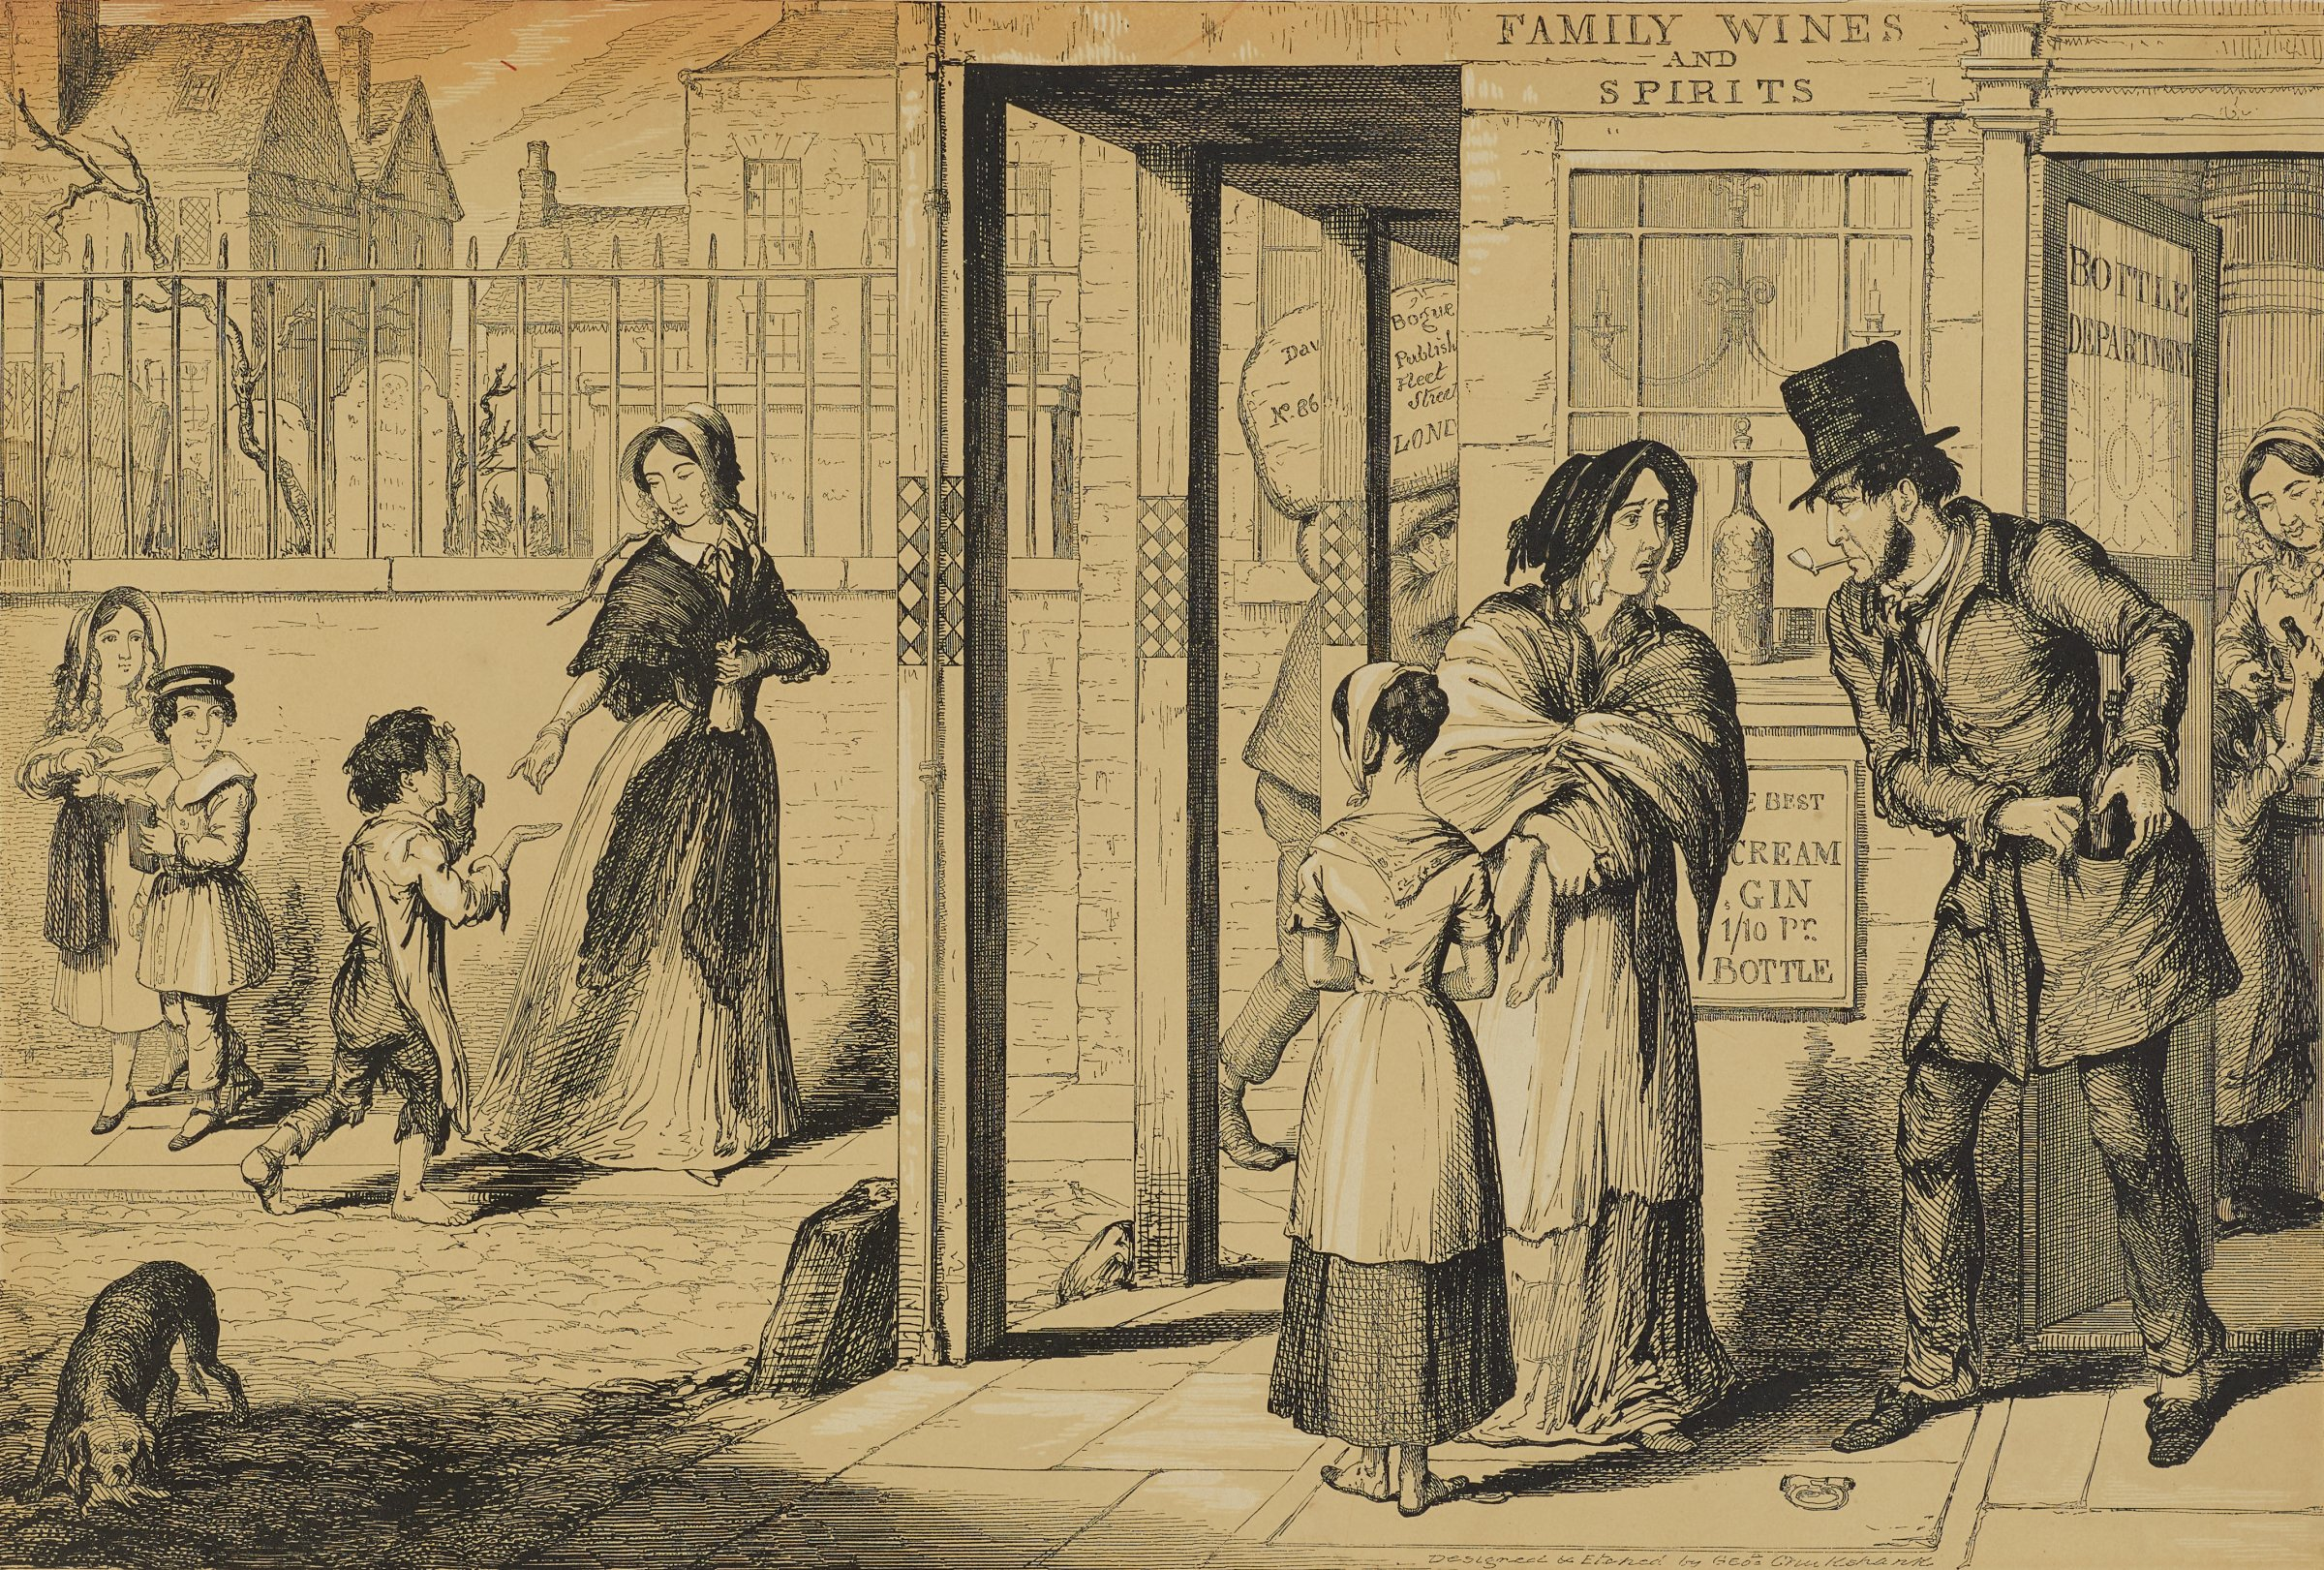 The man and woman with their children stand outside a spirit's store. They look at one another as the man slides a bottle into his coat pocket.